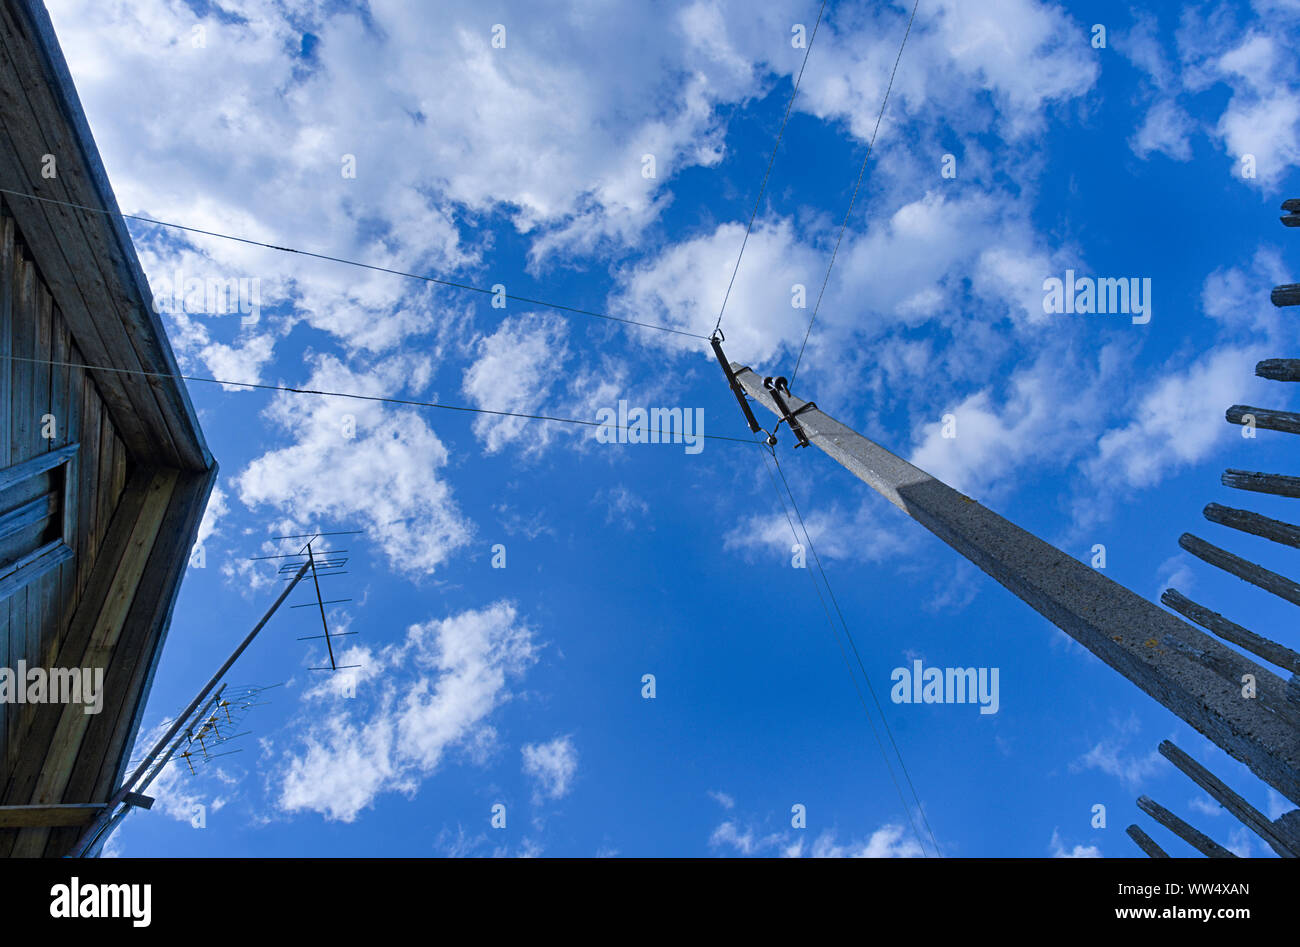 Concrete pole with electrical wires next to a wooden fence and part of the roof of a village house in the background of a blue sky with clouds Stock Photo